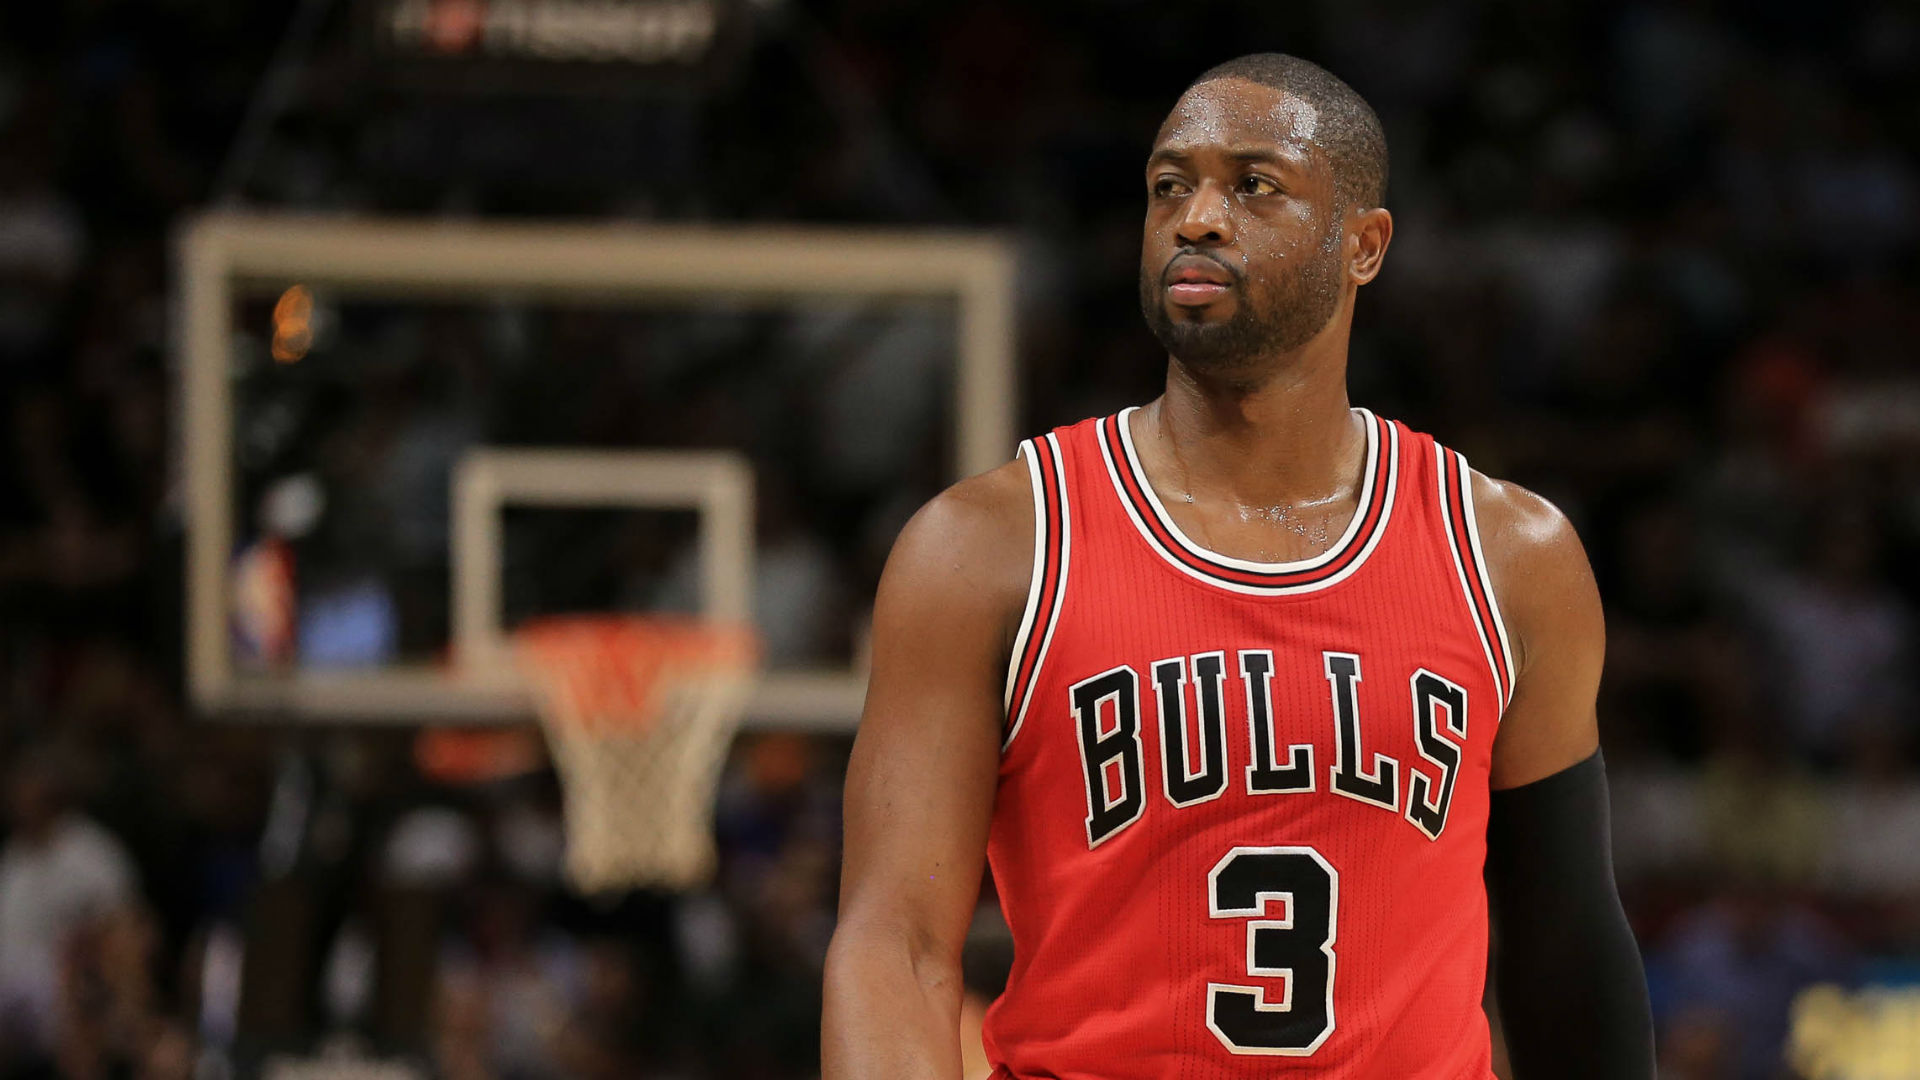 wholesale dealer 578db 121ac Bulls' Dwyane Wade makes great point about NBA's referee ...